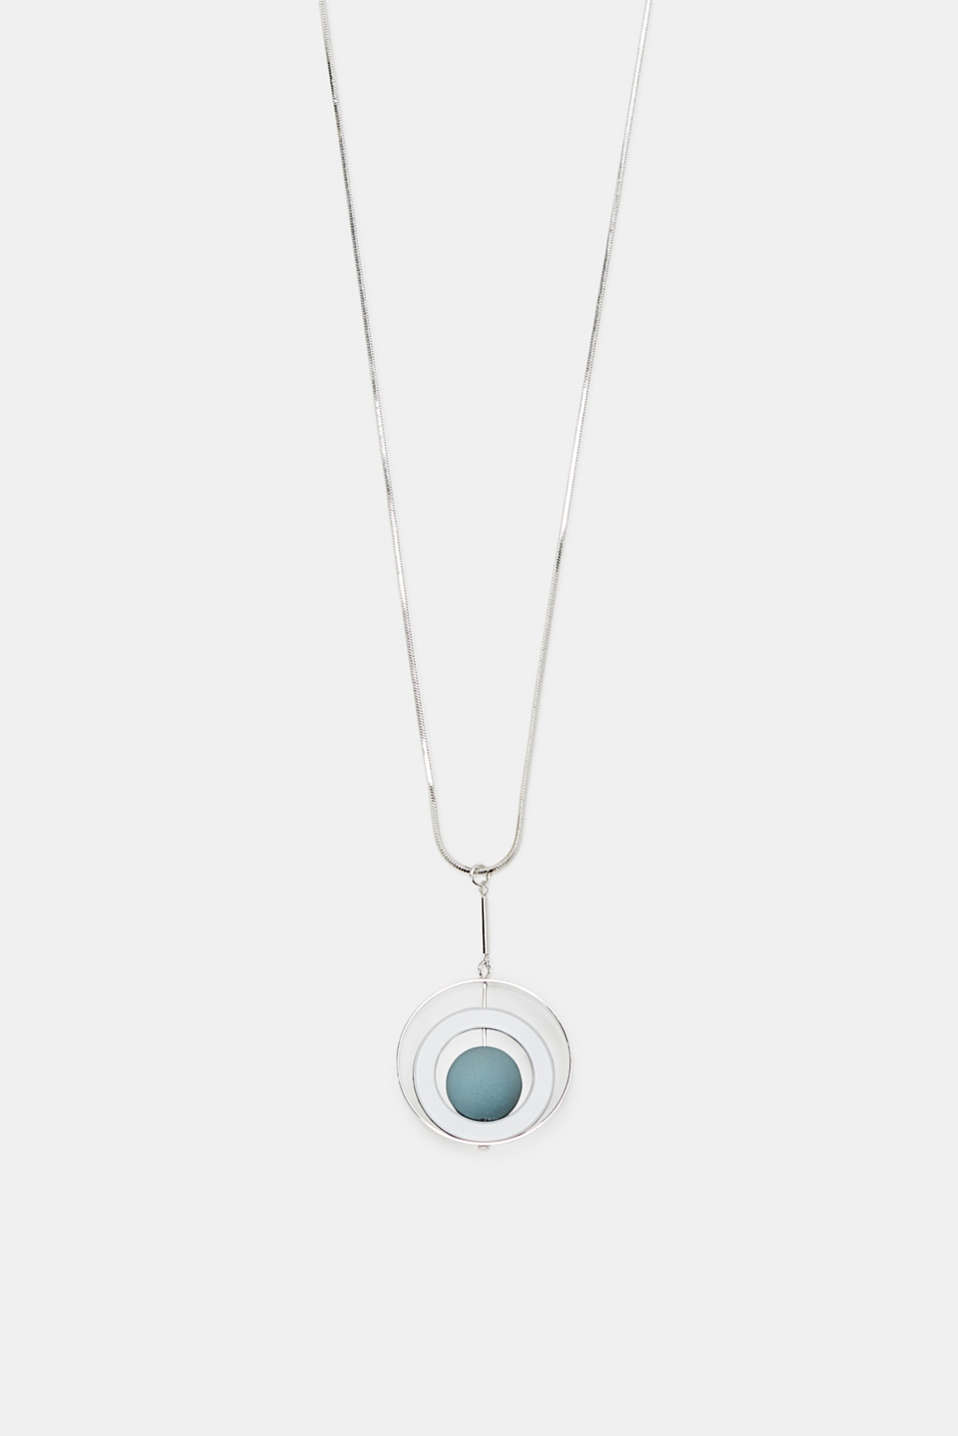 Esprit - Long necklace with a pendant